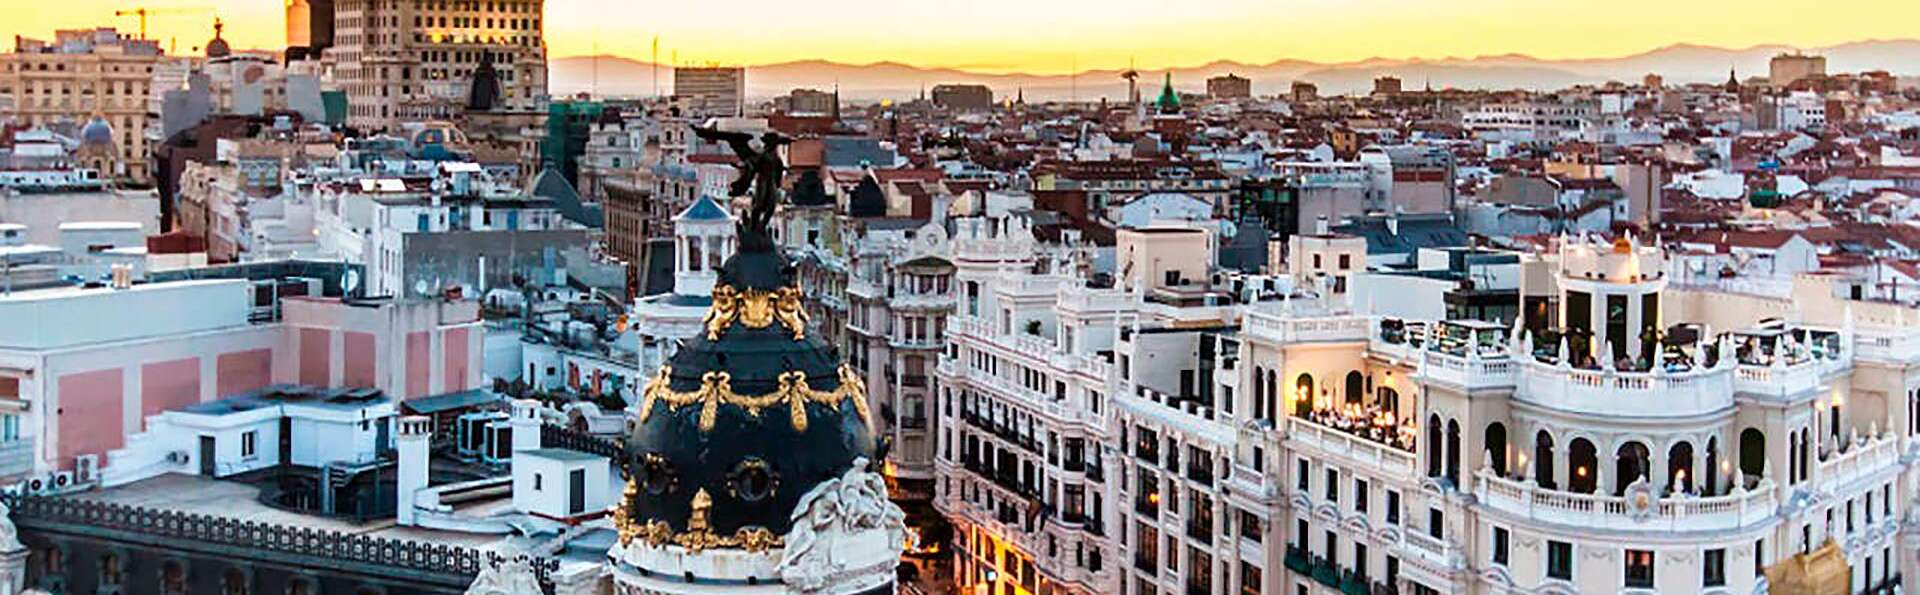 Hotel Sterling - edit_Madrid-Legotravel.jpg